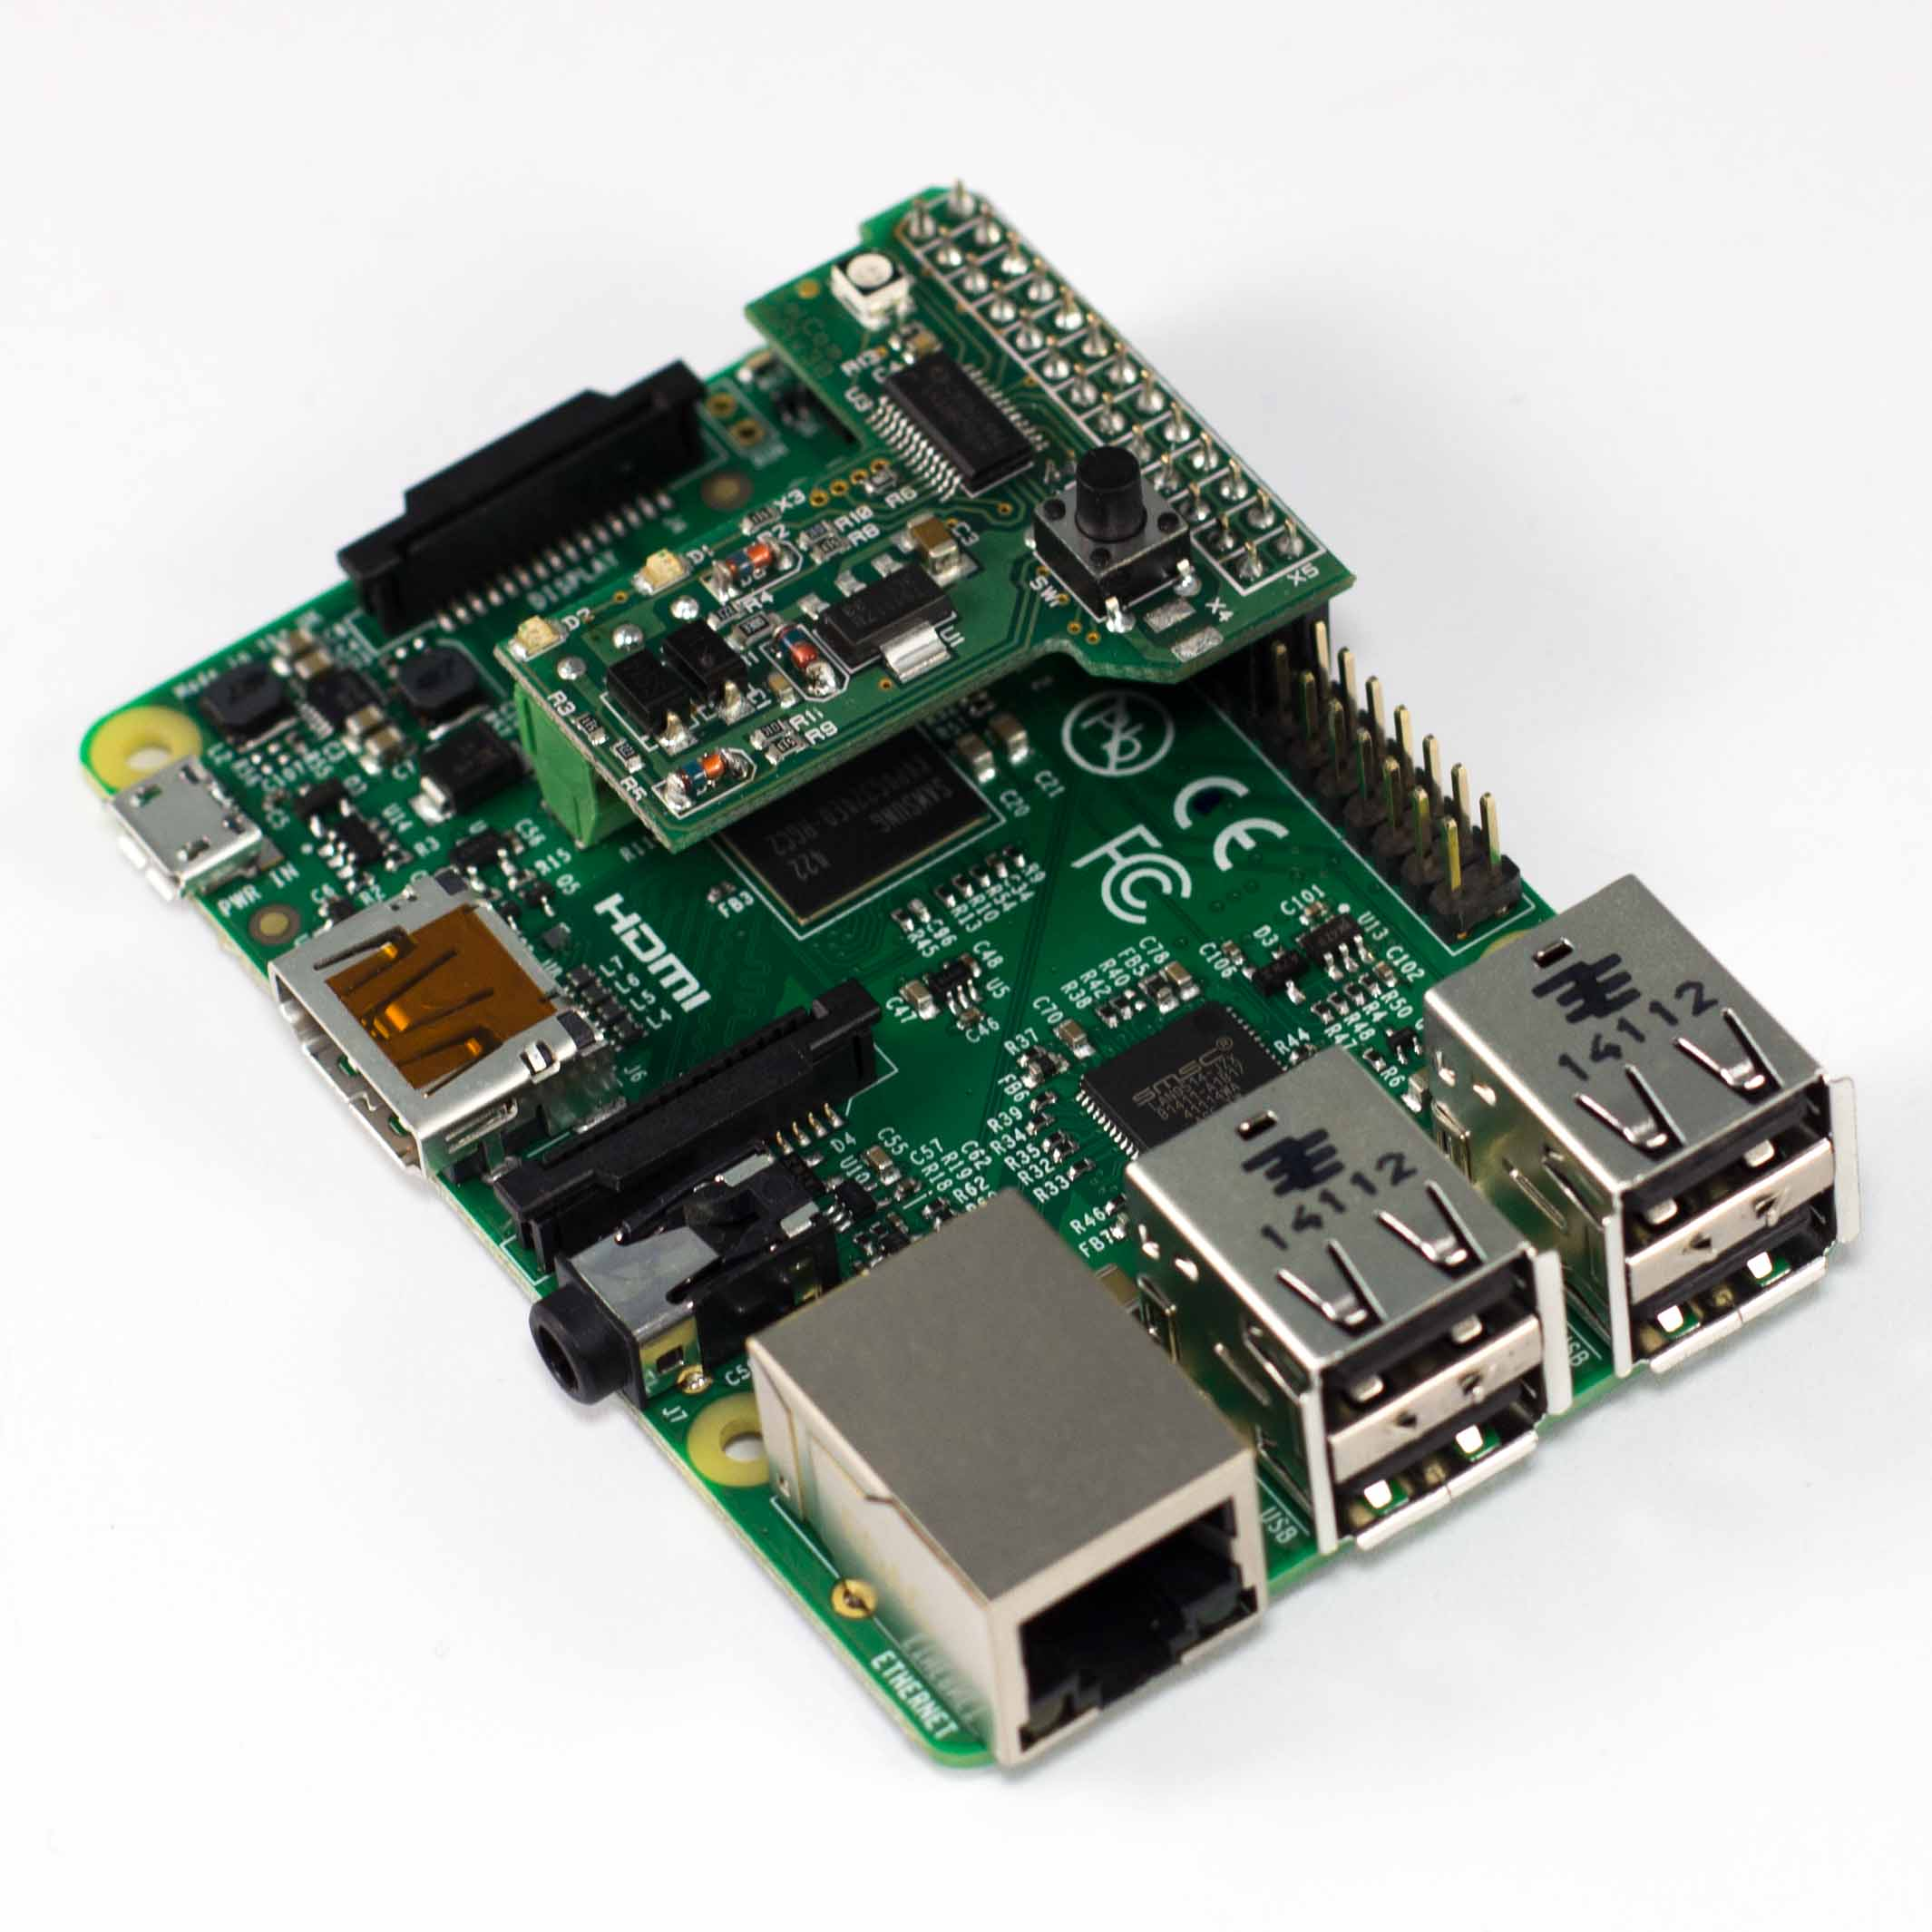 Mopi Hot Swap Mobile Power For The Pi 12 Volt Timer Relay Maplin Product Pic